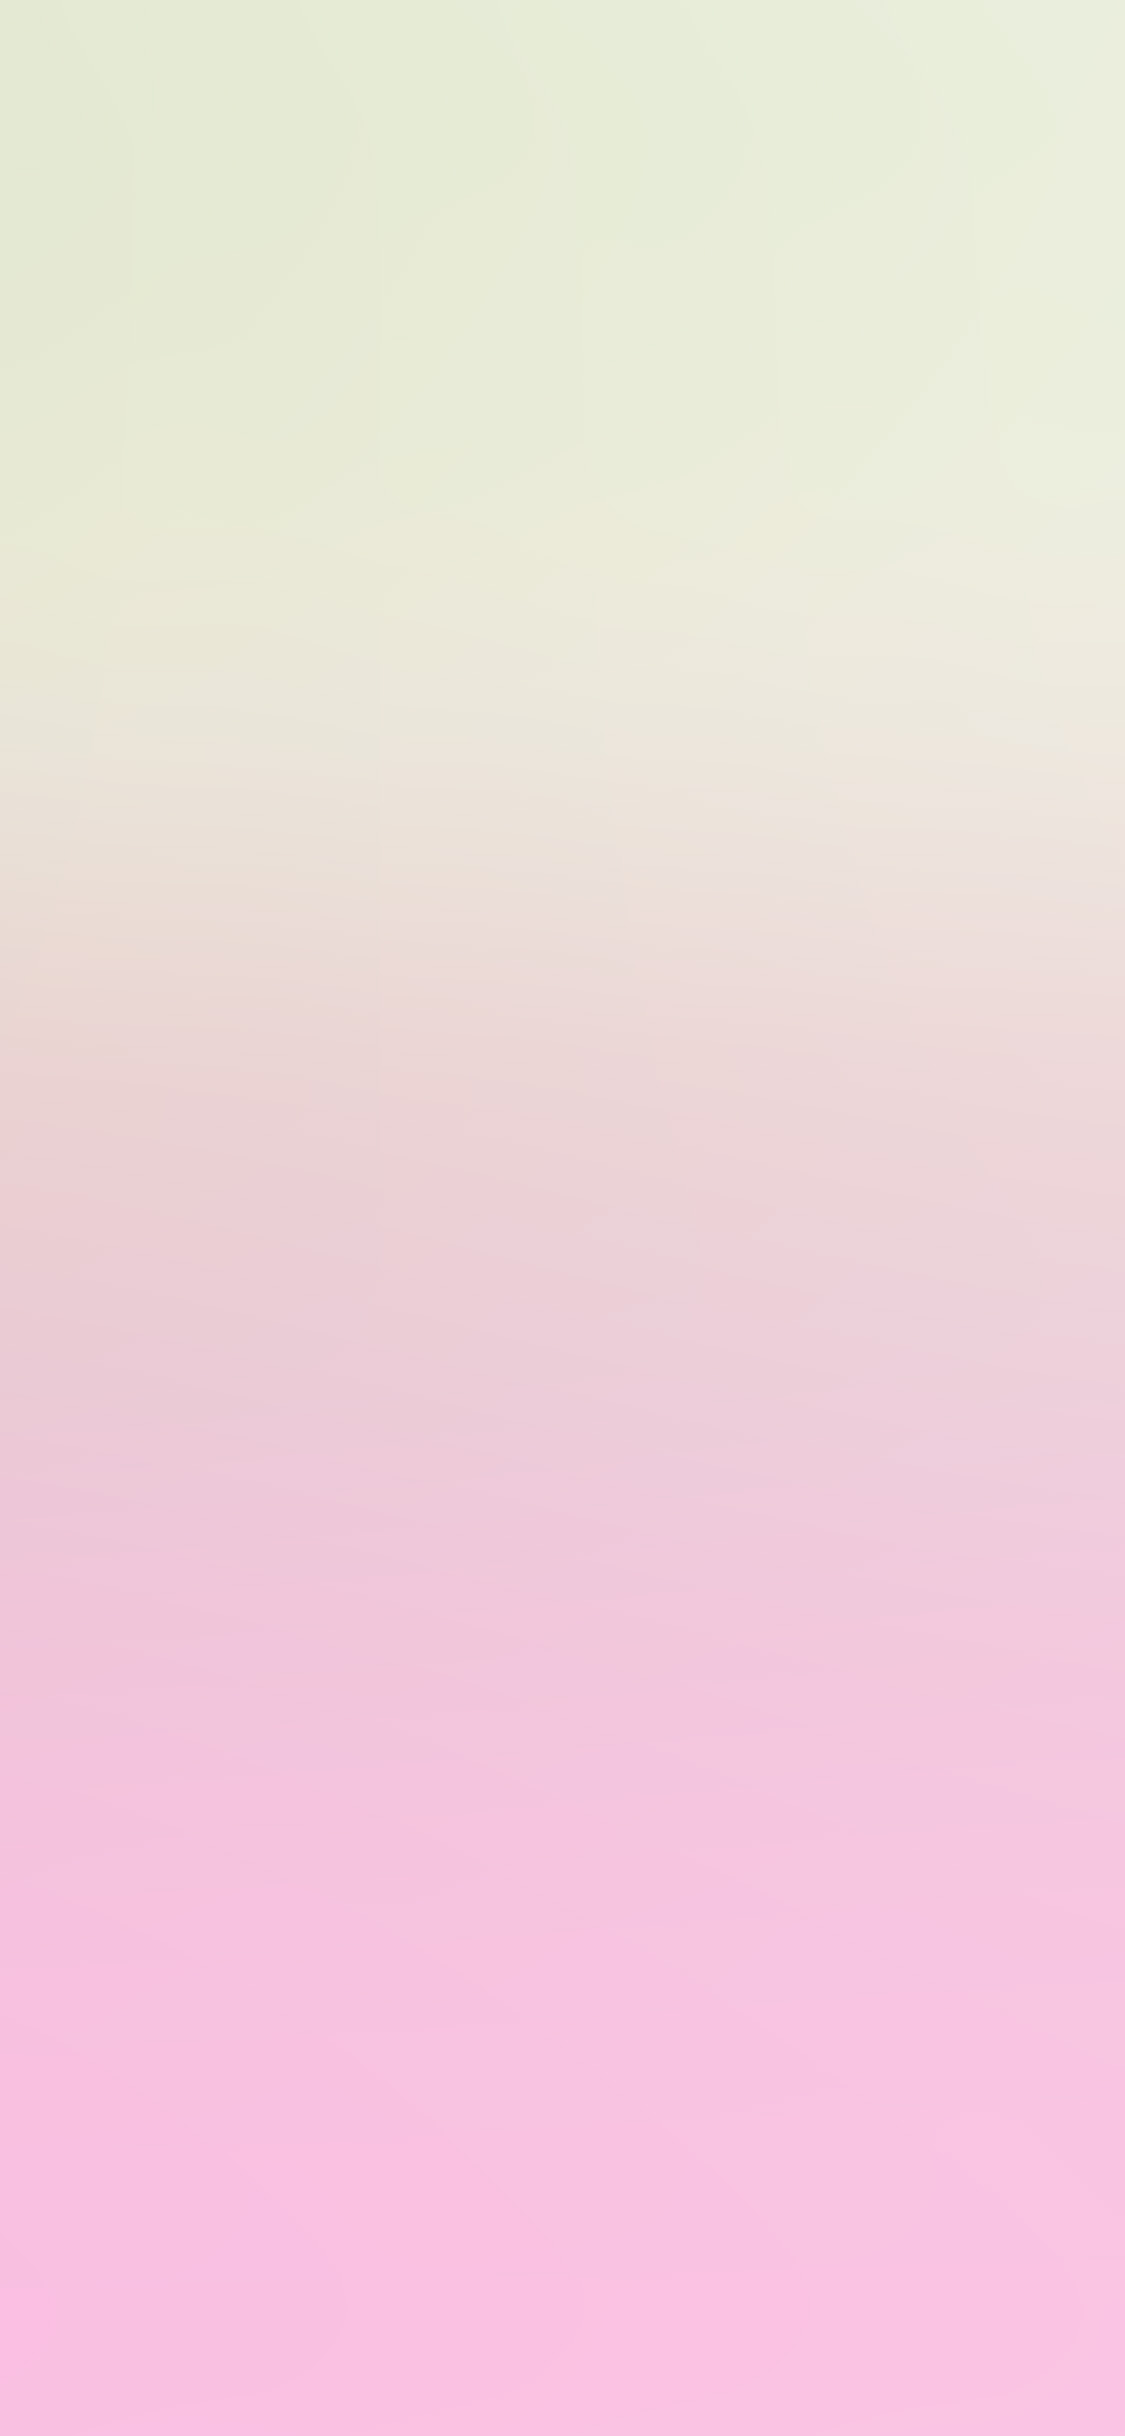 iPhonexpapers.com-Apple-iPhone-wallpaper-sm56-pastel-pink-morning-blur-gradation